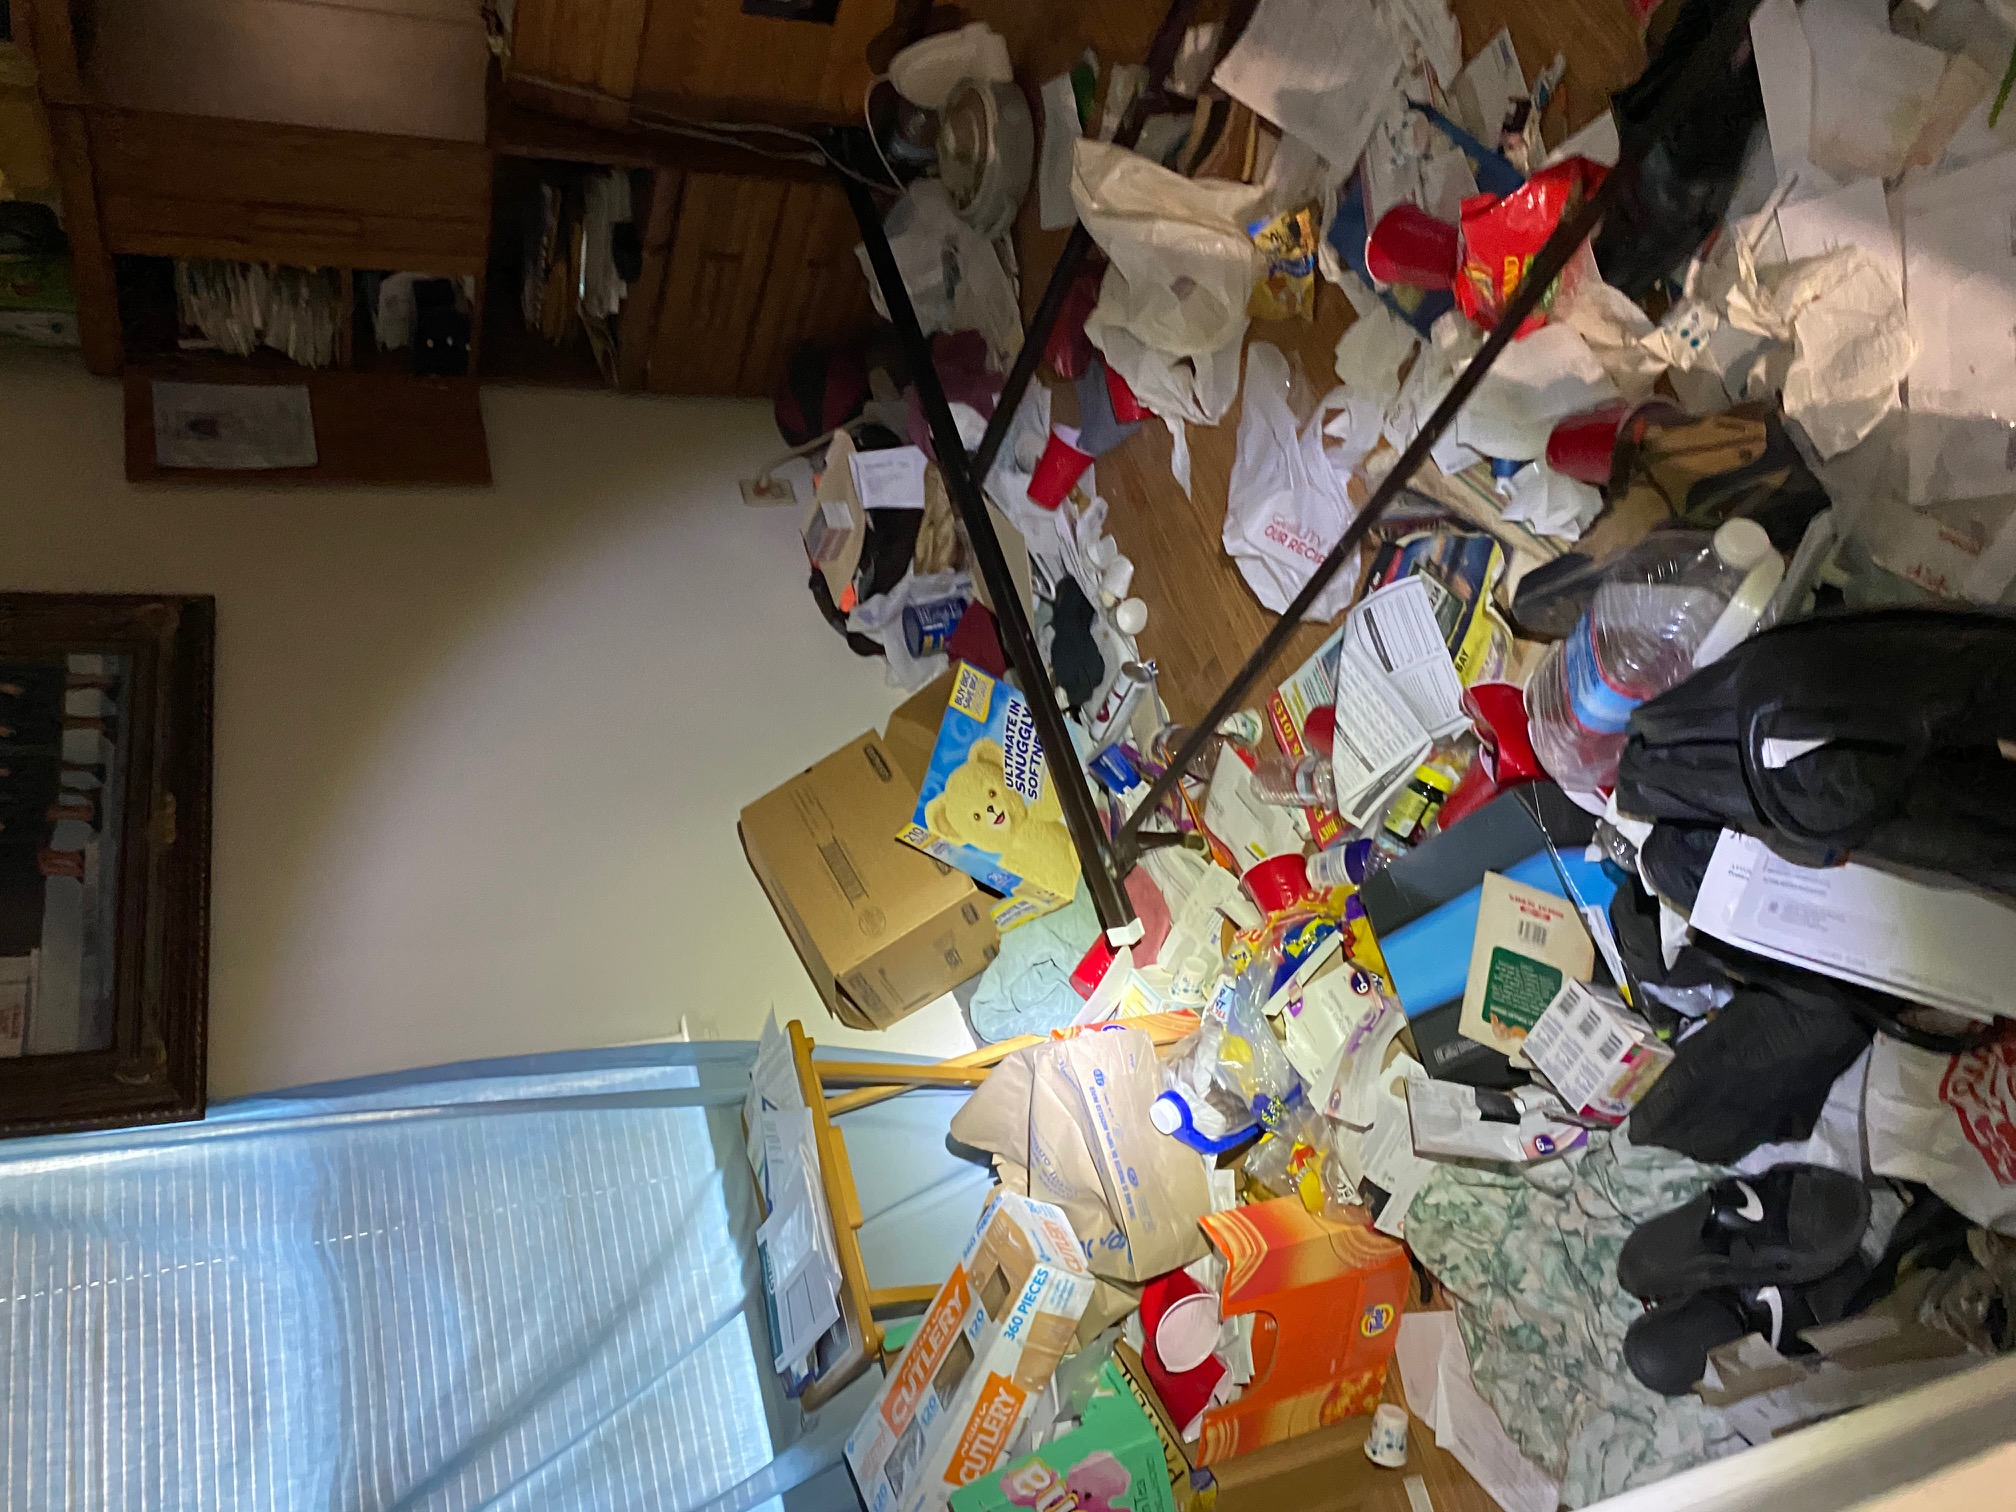 Image shows a bedroom blocked by trash and clutter. It's impossible to walk into the room.